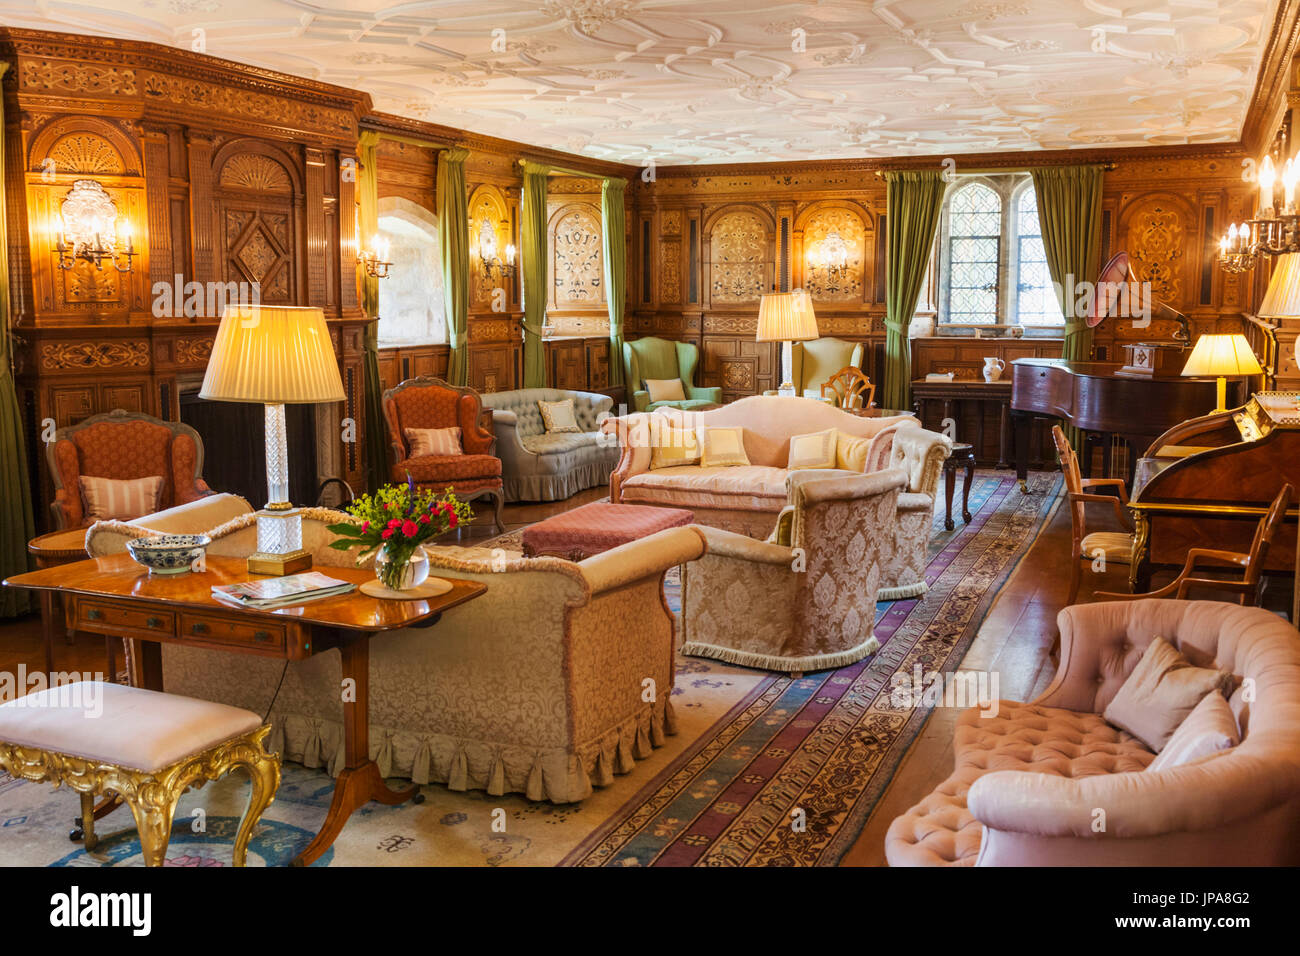 England, Kent, Hever, Hever Castle, The Sitting Room - Stock Image